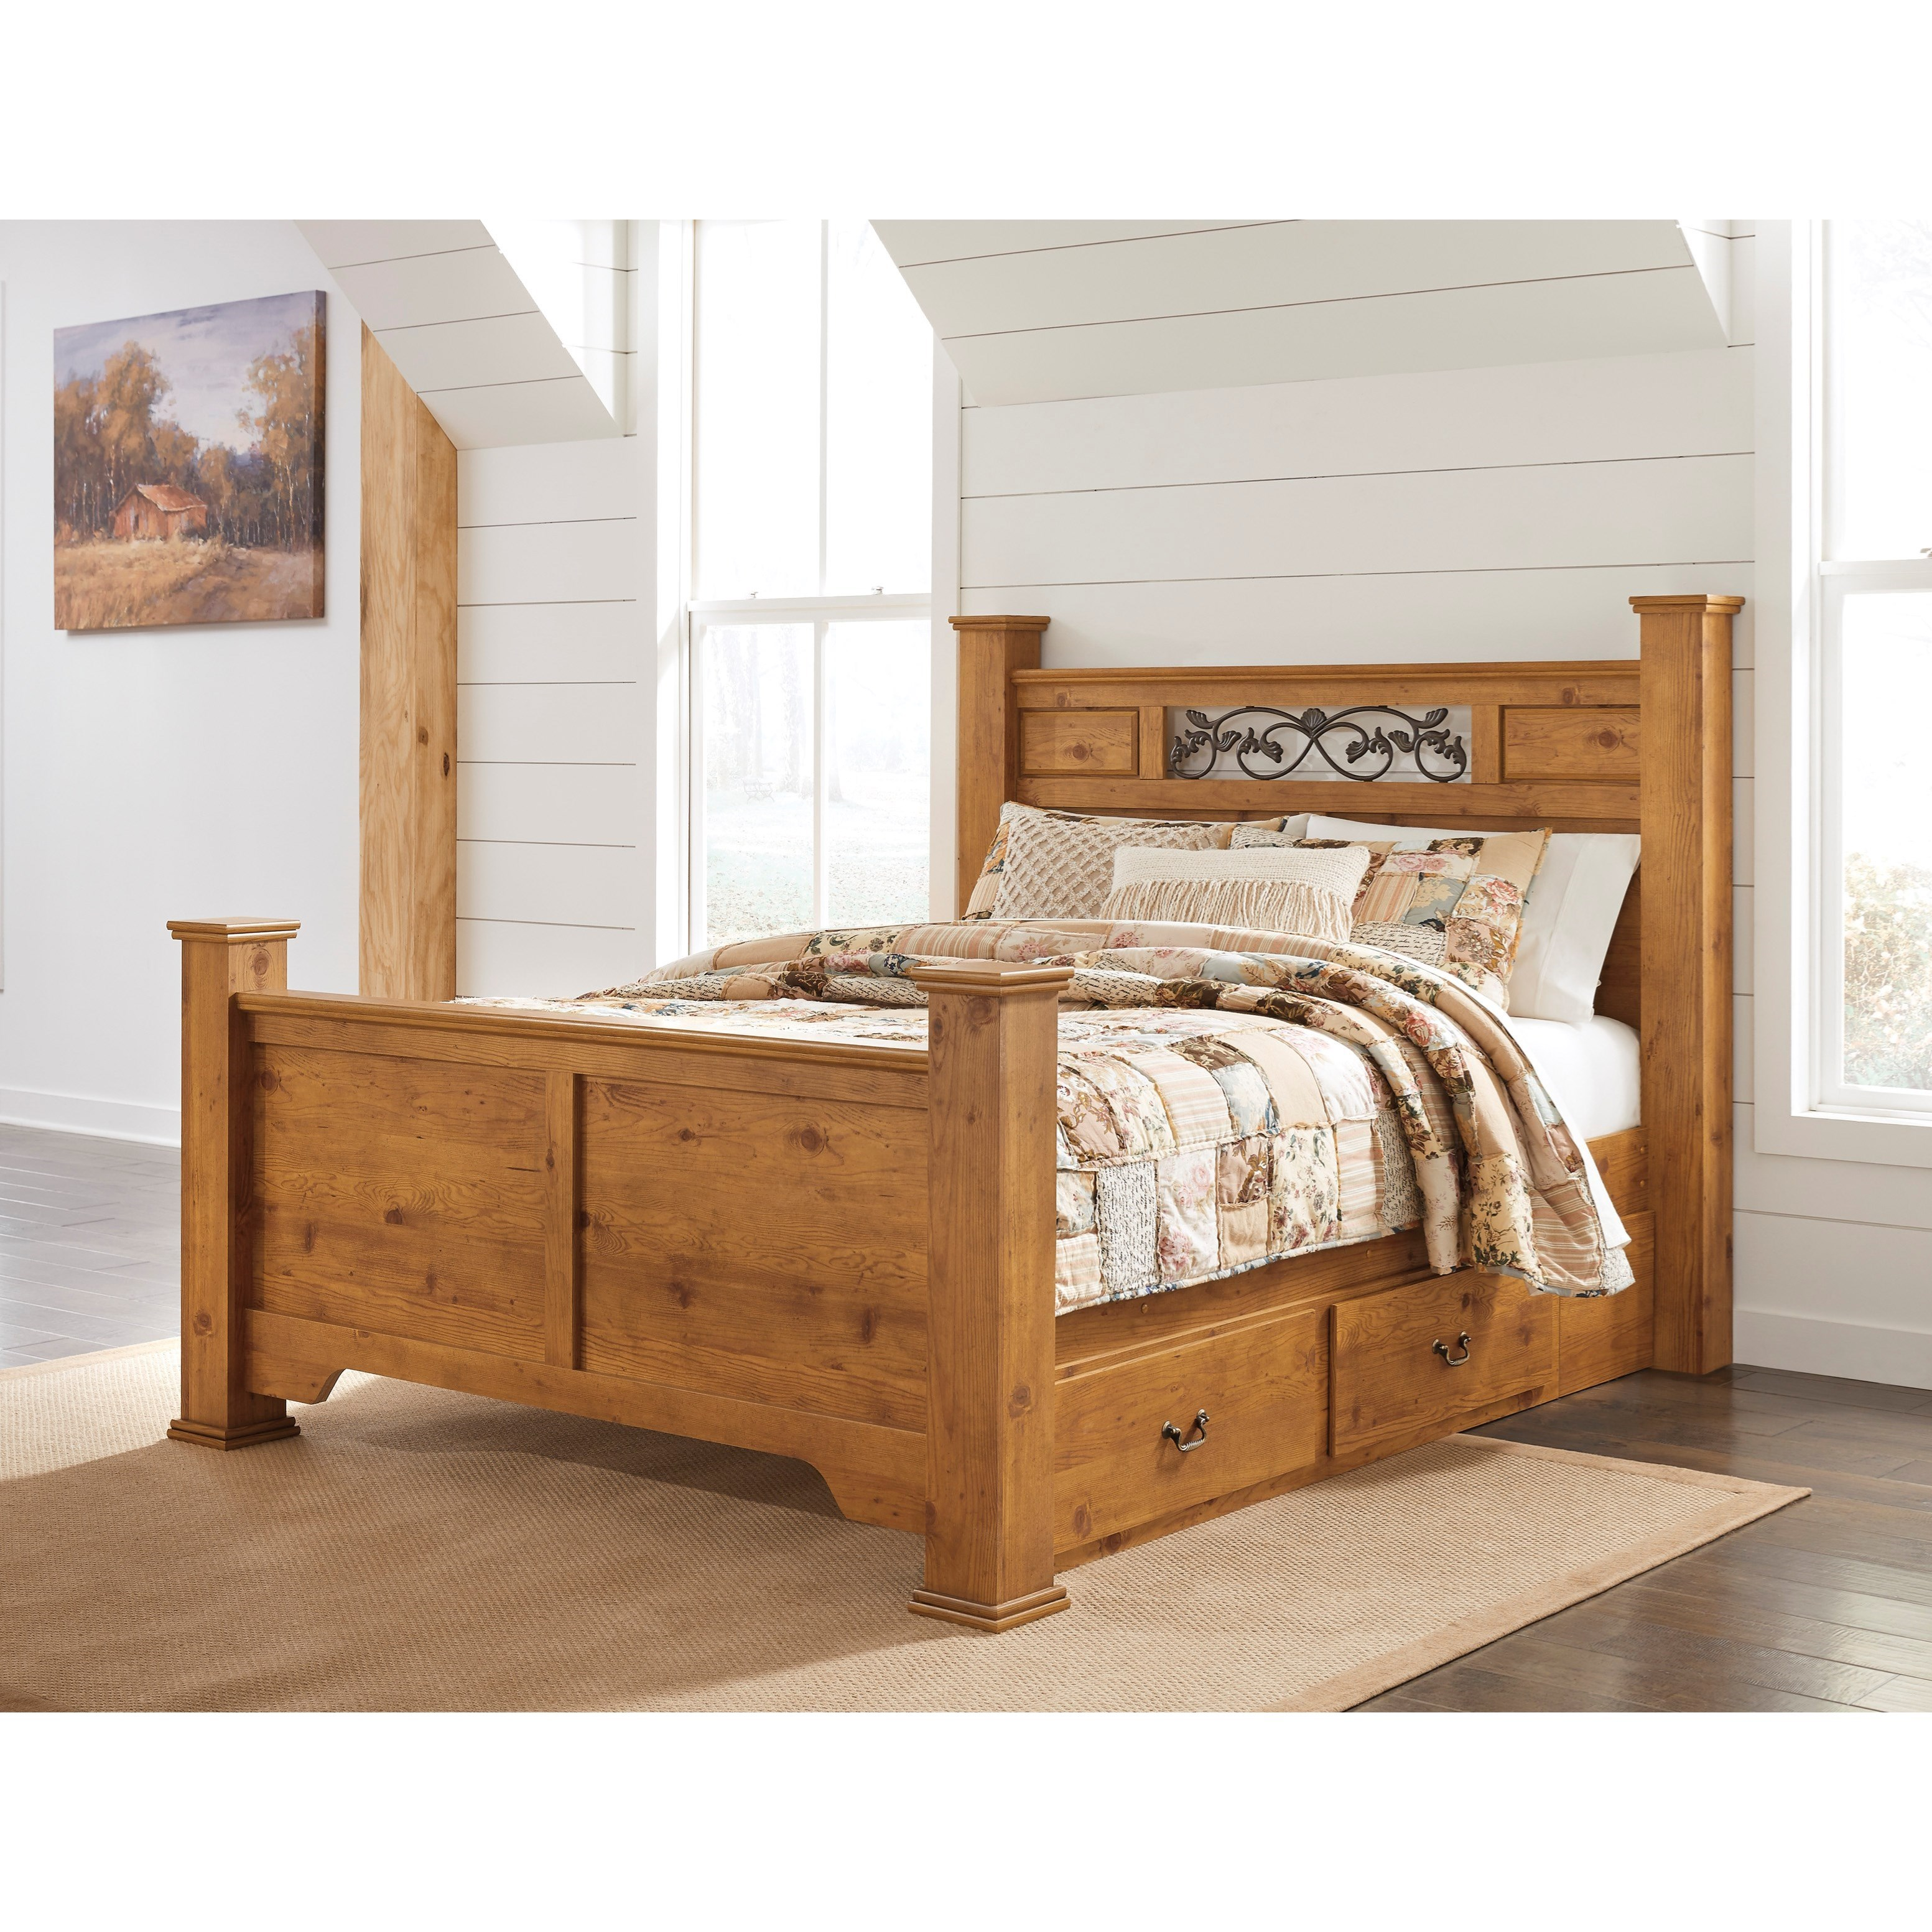 Queen poster bed with under bed storage by signature - Bed with storage underneath ...